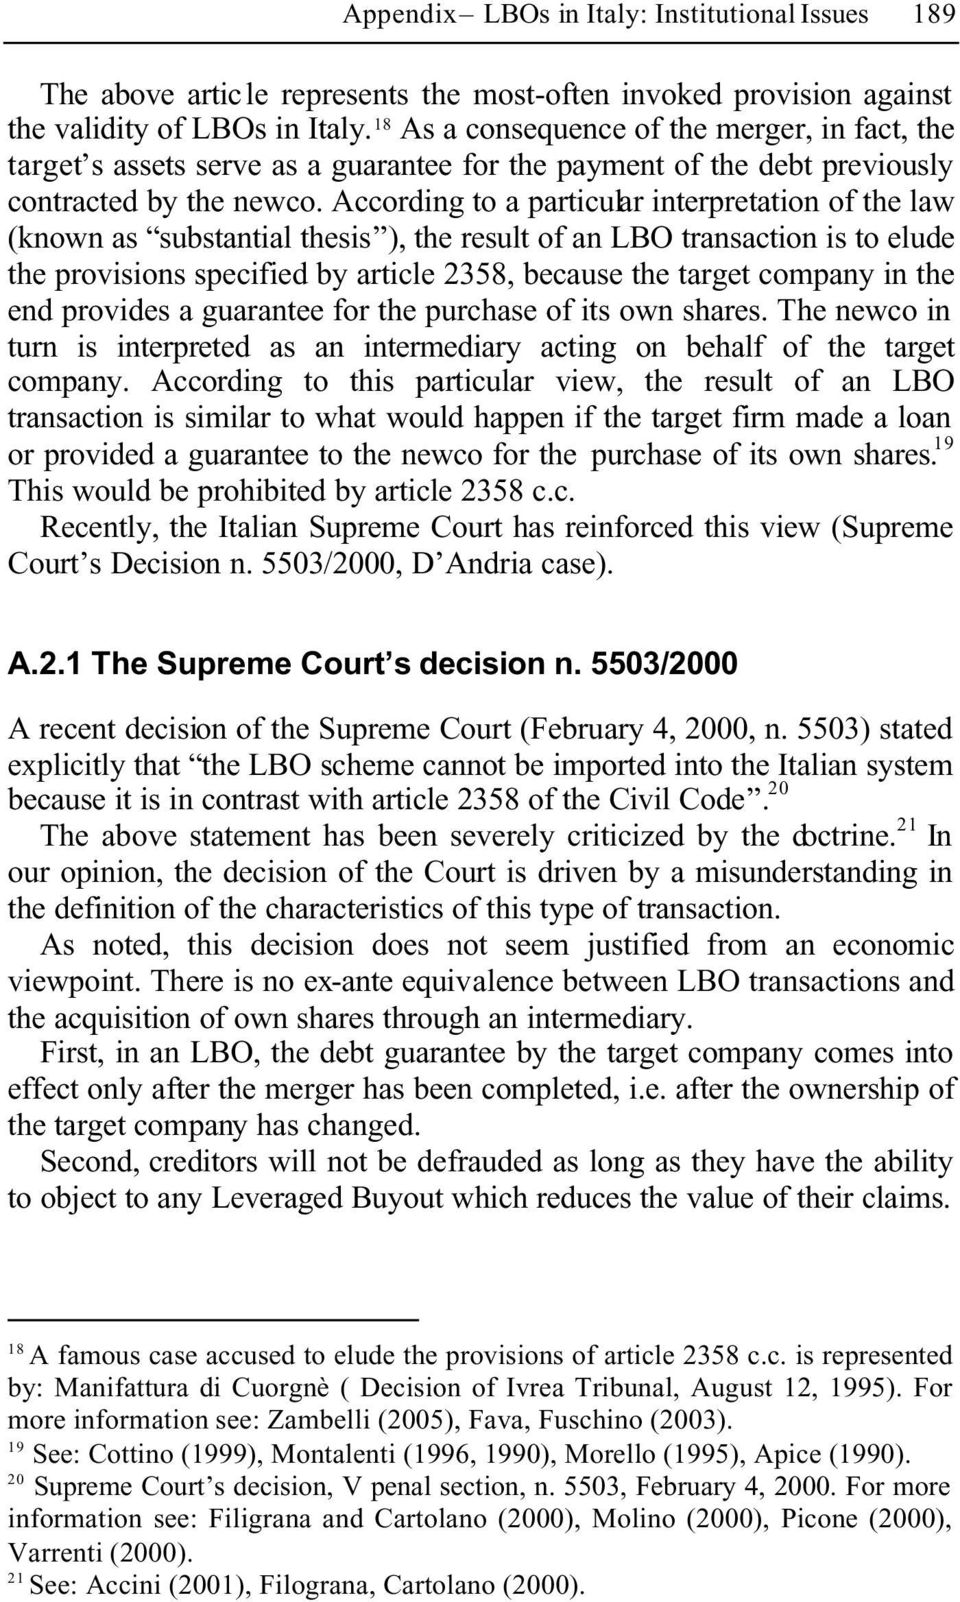 According to a particular interpretation of the law (known as substantial thesis ), the result of an LBO transaction is to elude the provisions specified by article 2358, because the target company